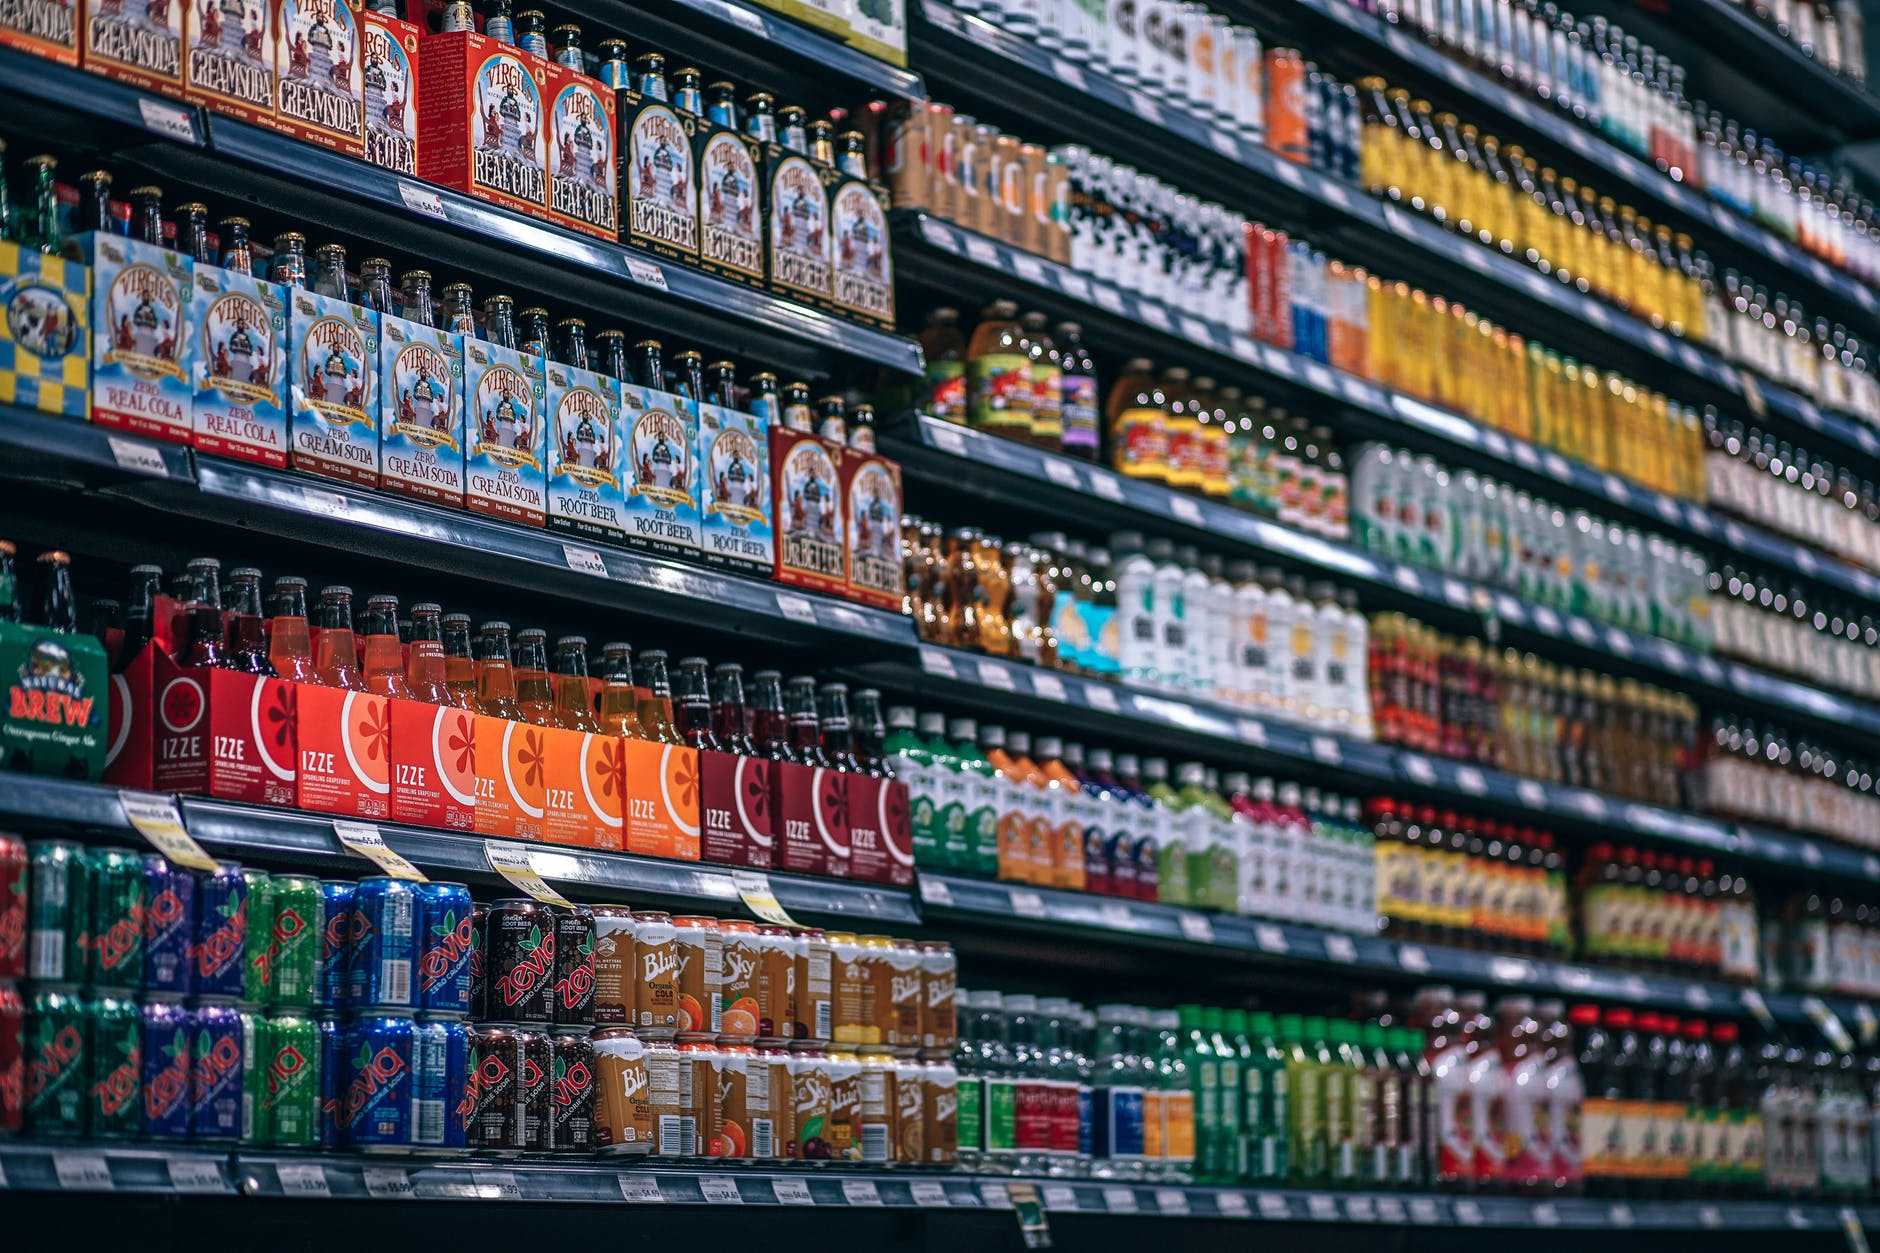 Soda, tea's, and energey drinks-many substances that individuals drink with excessive caffeine.